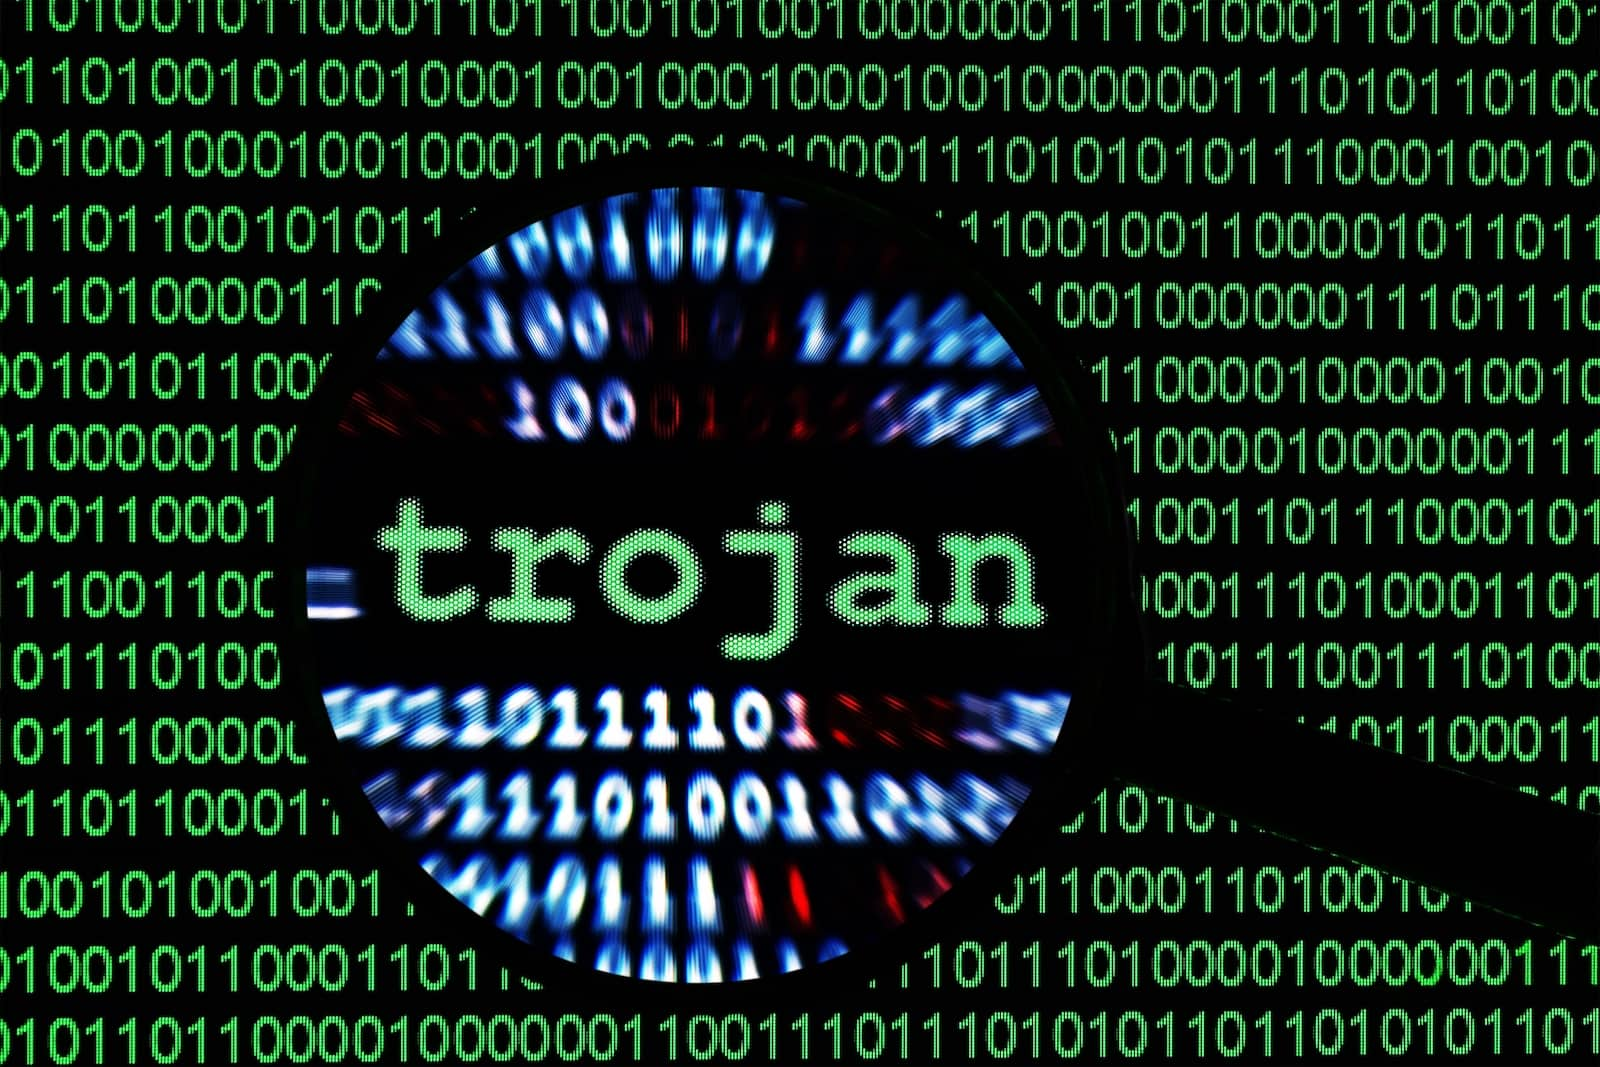 Can antivirus detect trojan virus type?